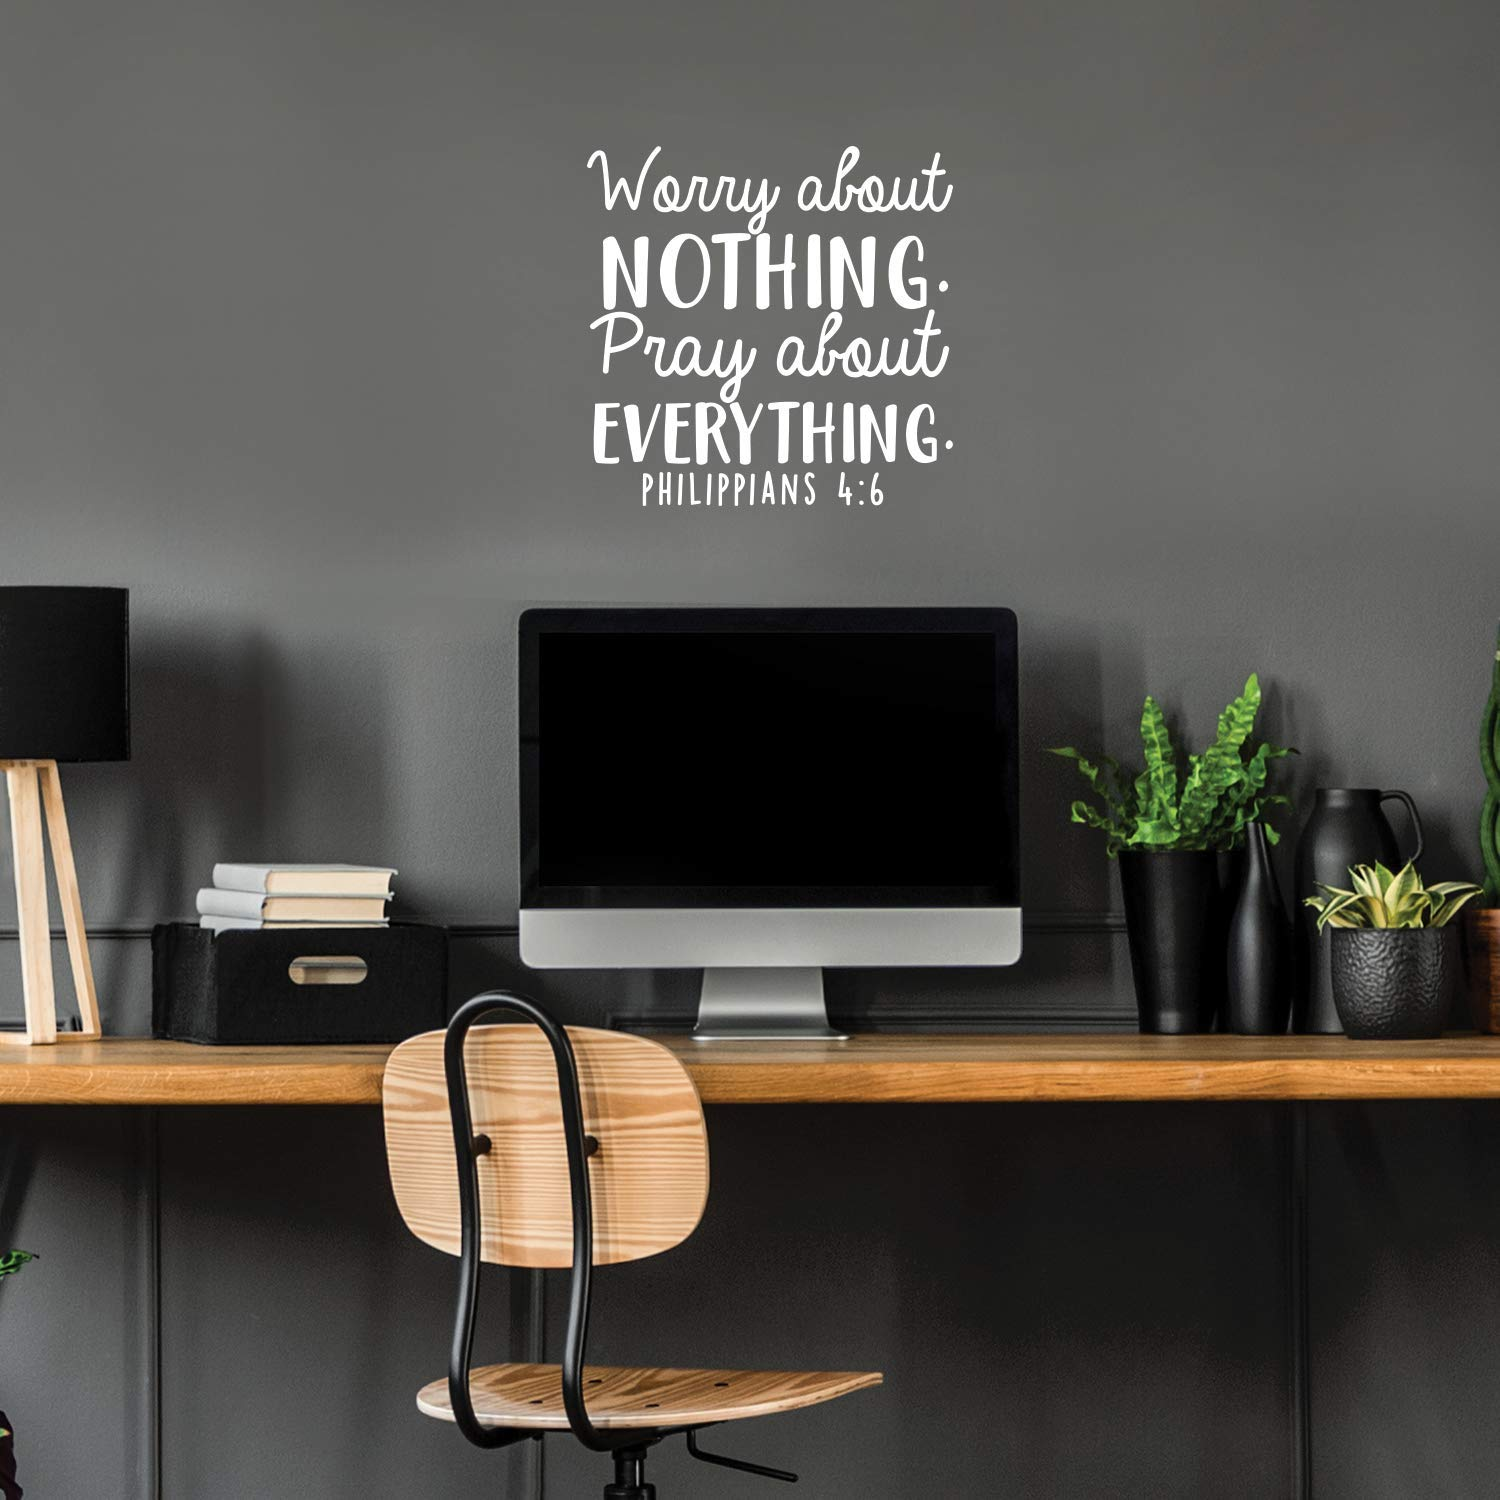 """Vinyl Wall Art Decal - Worry About Nothing Pray About Everything - 17"""" x 17"""" - Modern Inspirational Religious Bible Verse Quote for Home Bedroom Office Church Decoration Sticker (White)"""